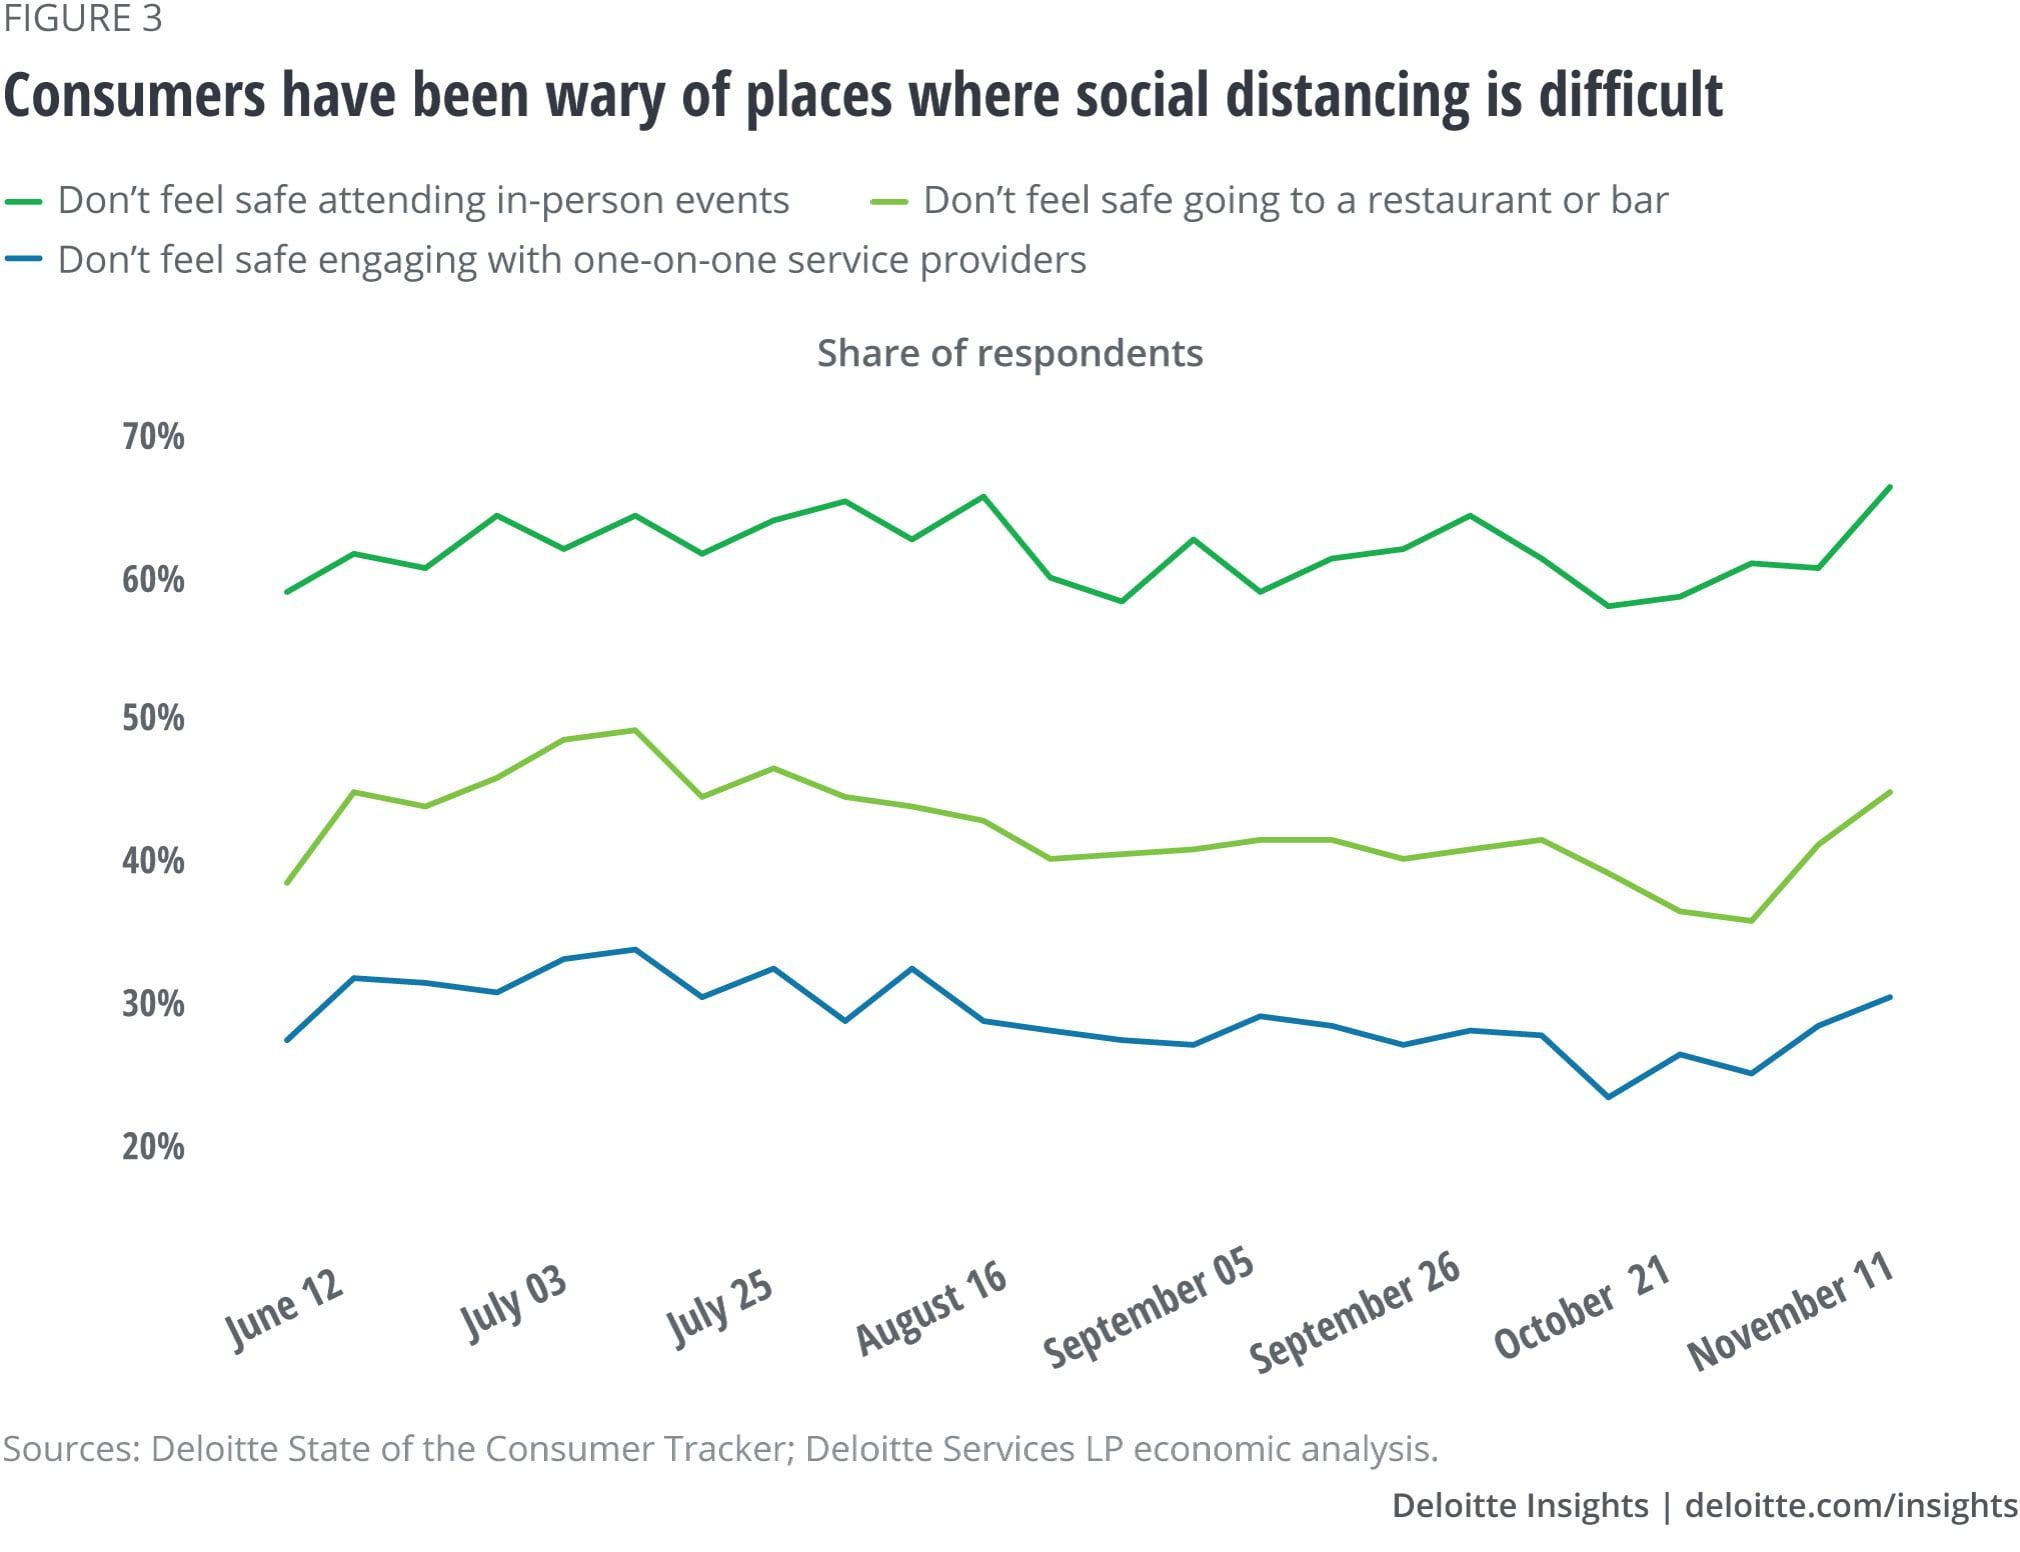 Consumers have been wary of places where social distancing is difficult